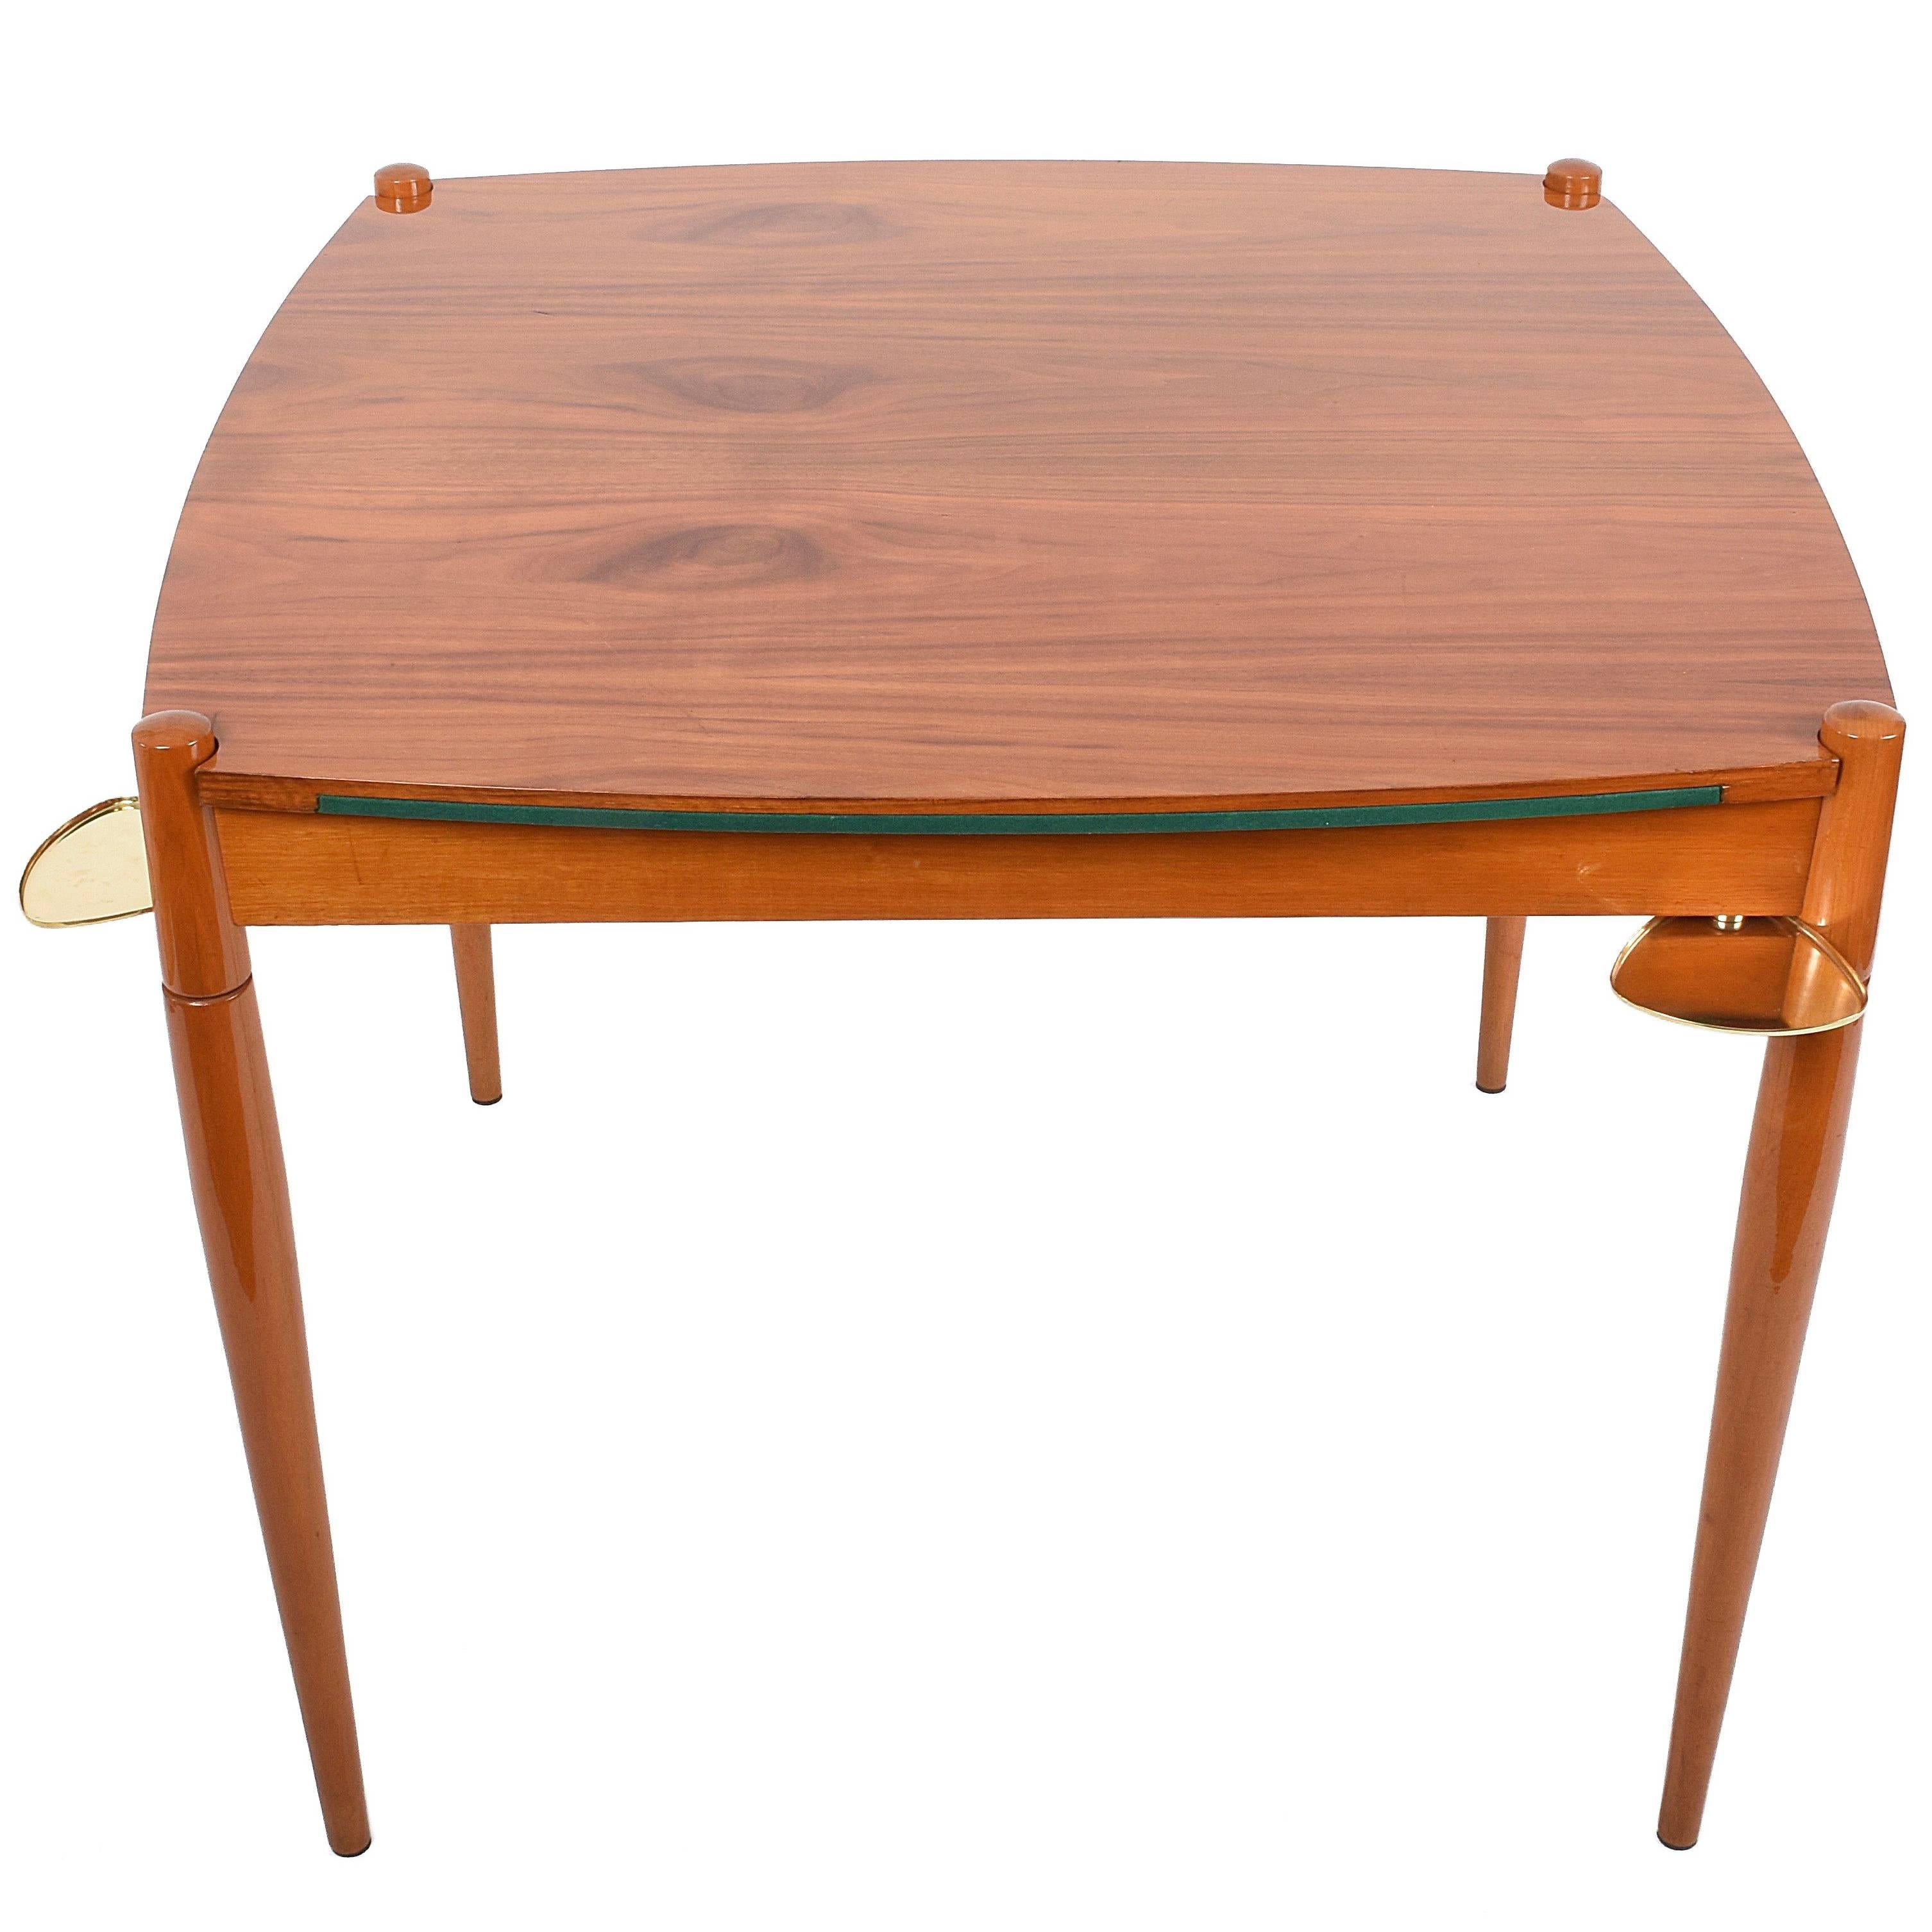 Delightful Gio Ponti Game Table With Mansonia Walnut And Green Felt Top, Italy, 1958  For